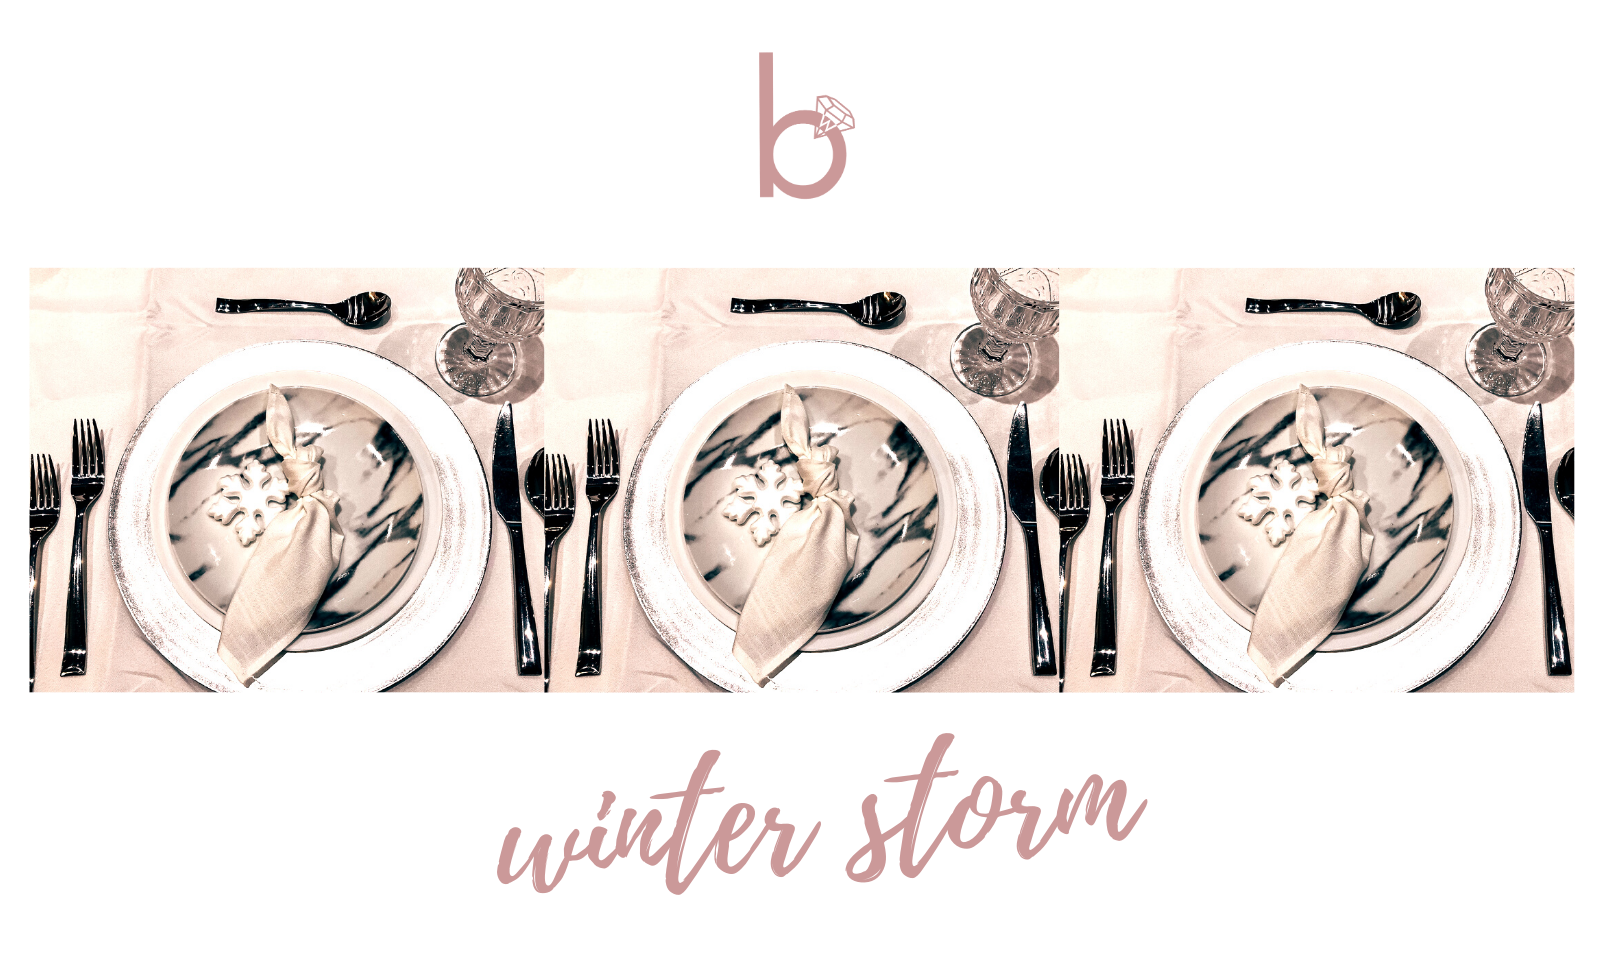 Winter Storm - Table Setting